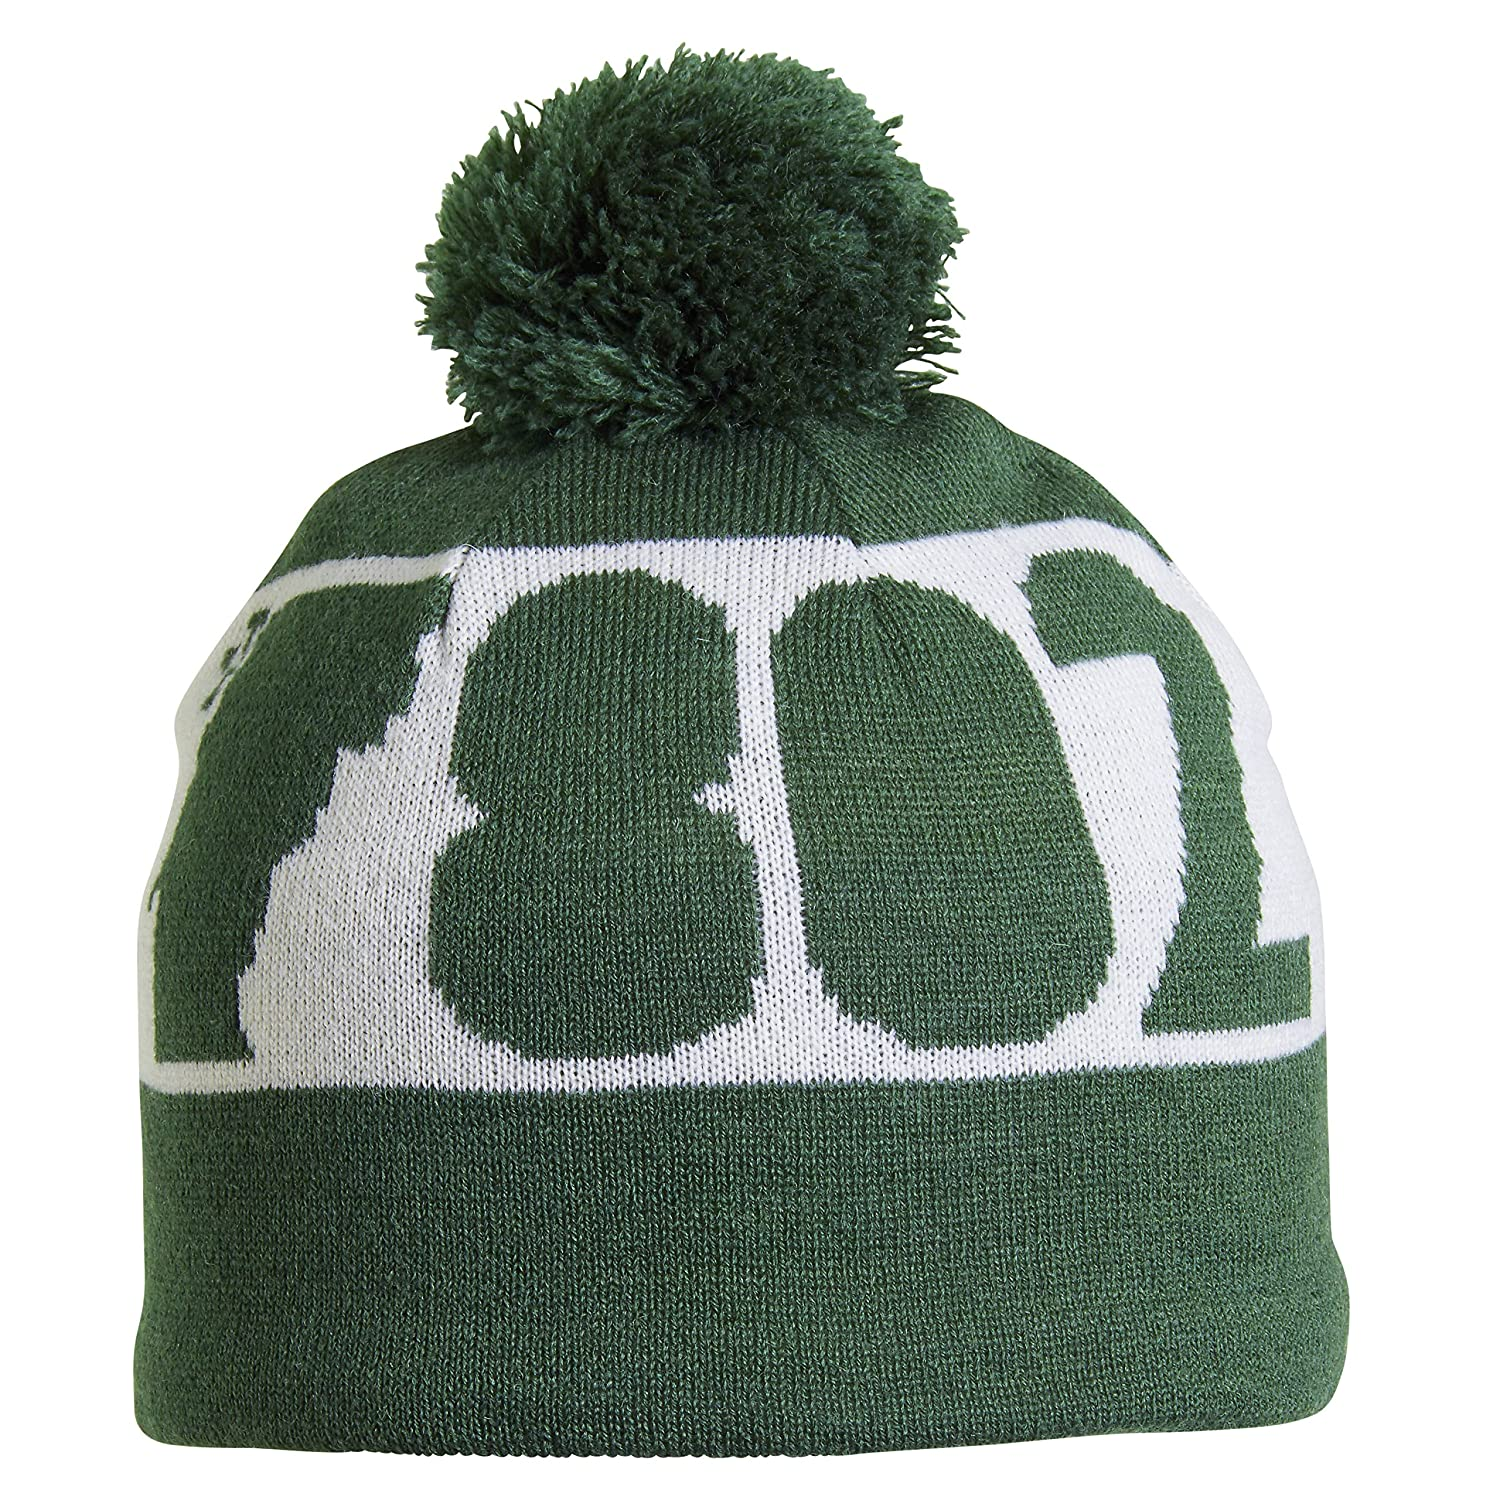 Amazon.com   Turtle Fur 802 Vermont Merino Wool Pom Ski Hat   Sports    Outdoors 035445f3e3a